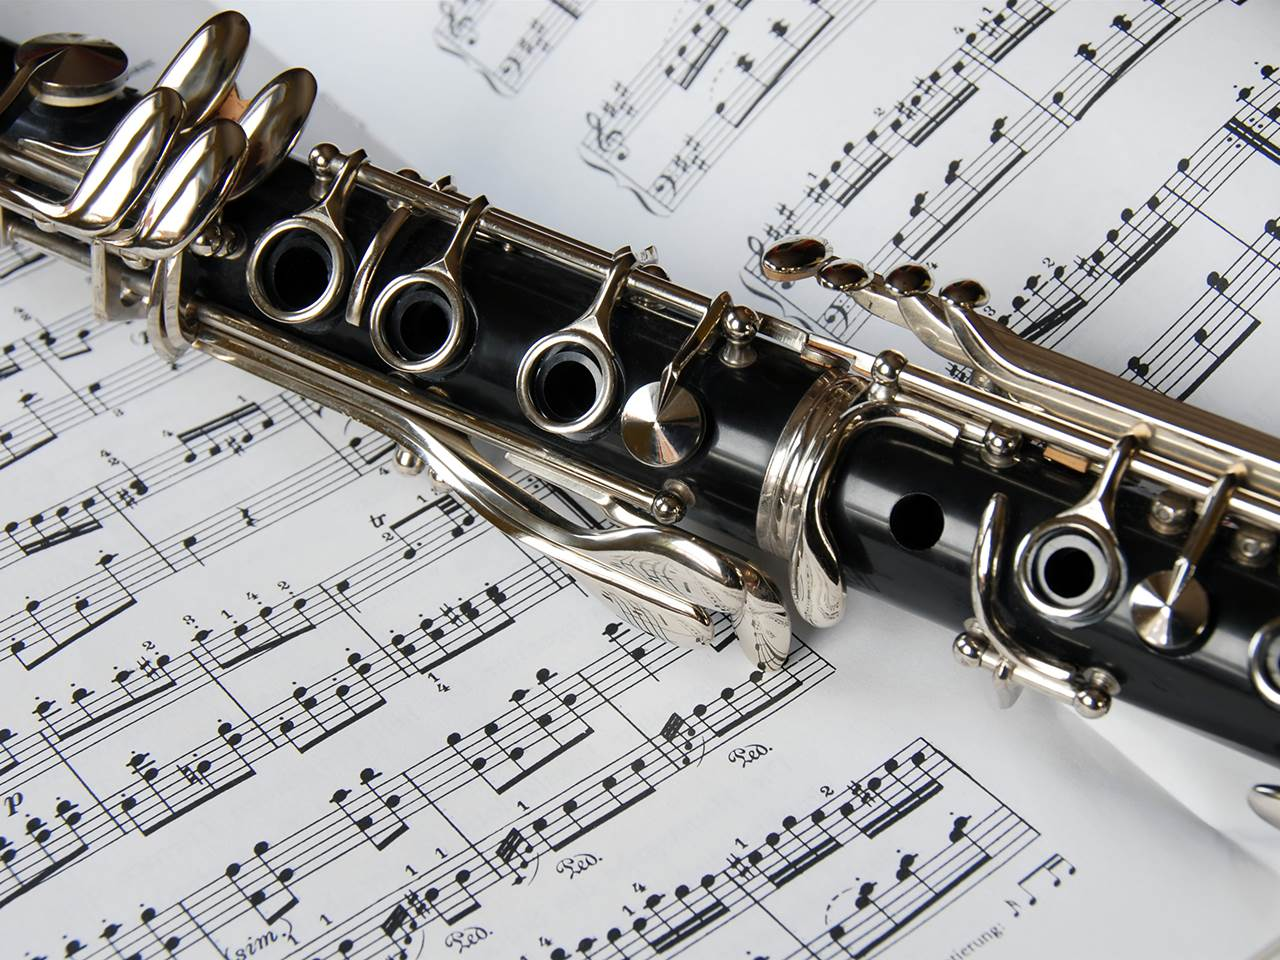 Melody malady: Clarinet player develops 'saxophone lung' from